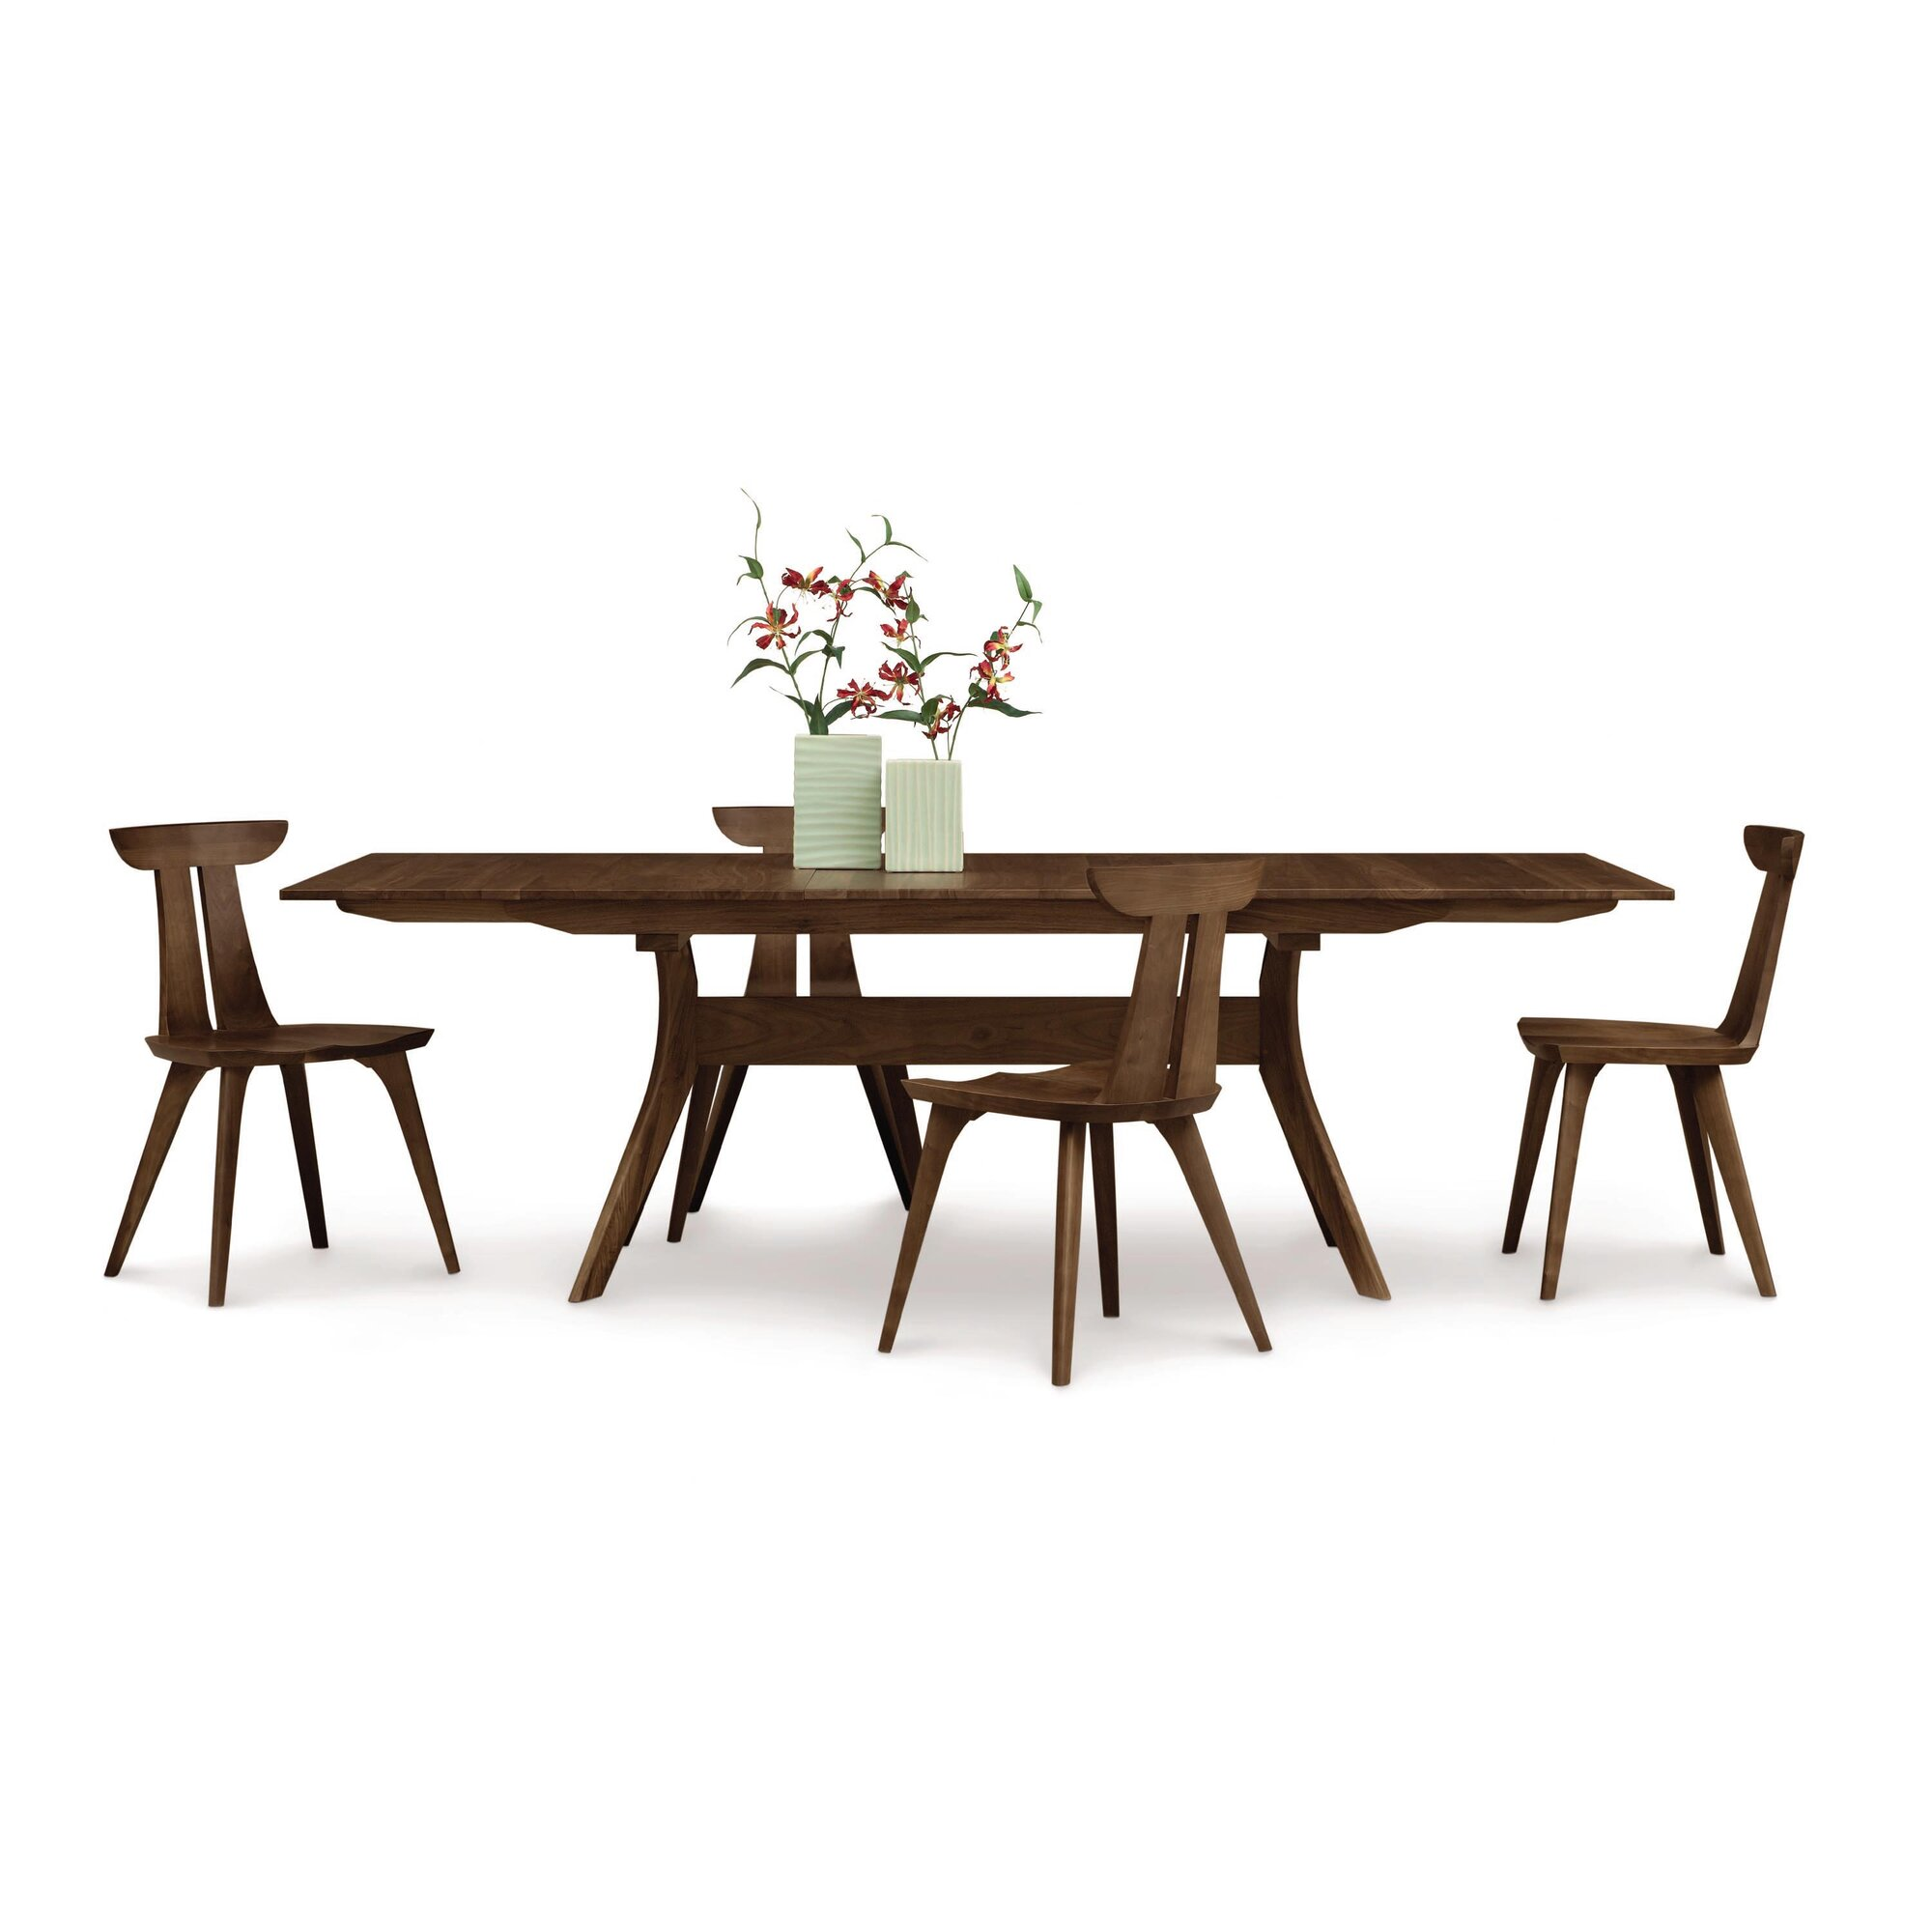 Copeland furniture audrey 7 piece dining set reviews for Furniture 7 reviews